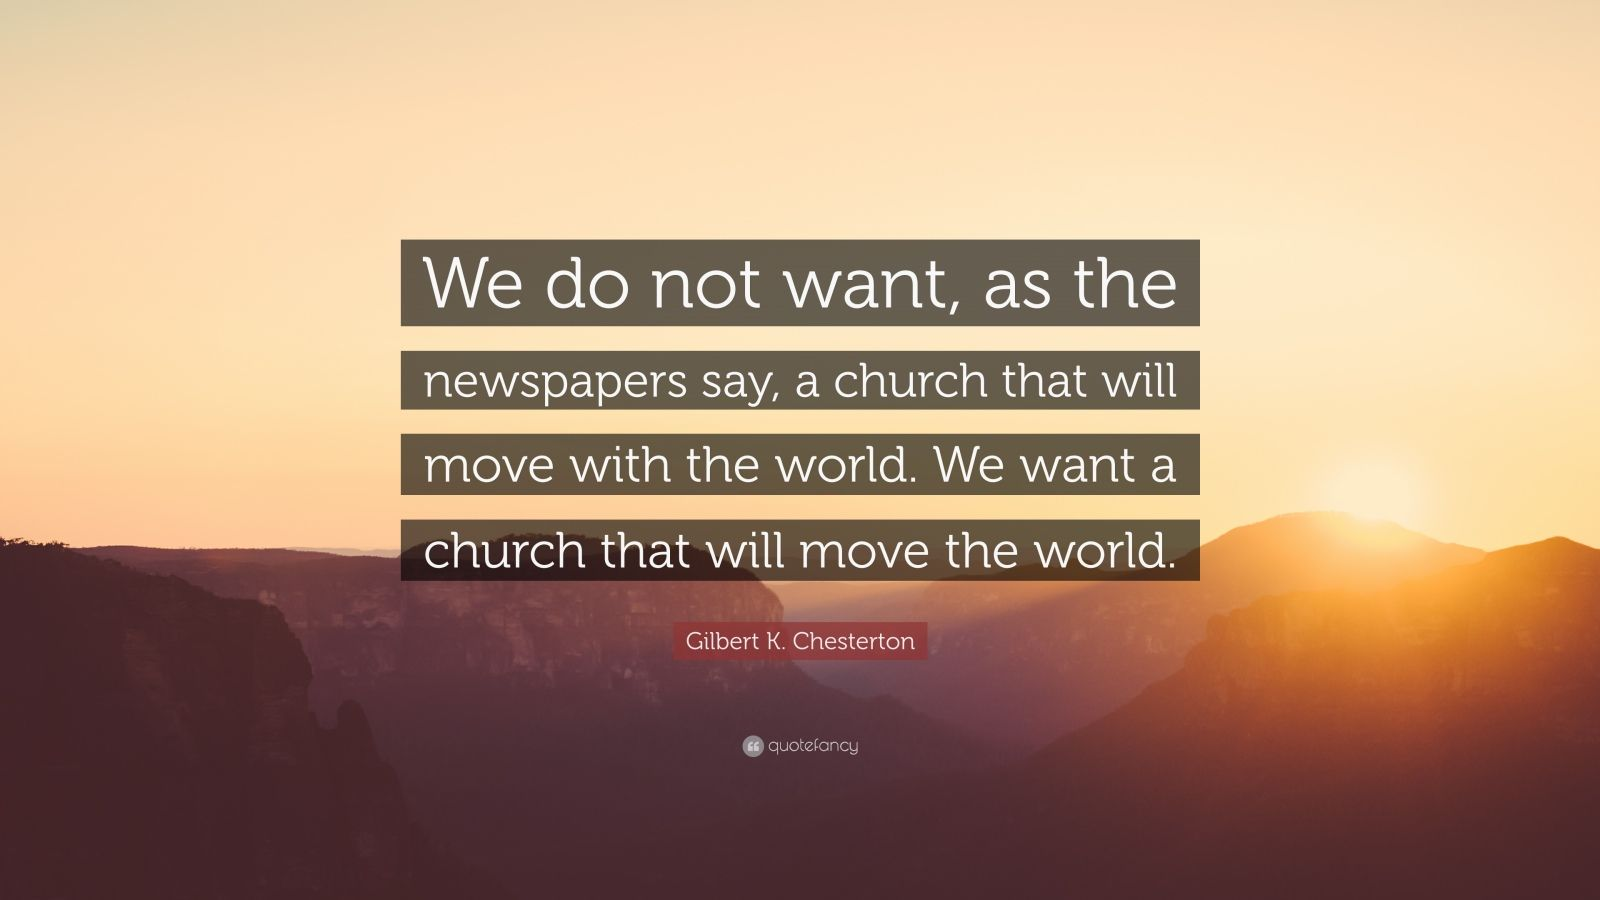 """Gilbert K. Chesterton Quote: """"We do not want, as the newspapers say, a church that will move with the world. We want a church that will move the world."""""""